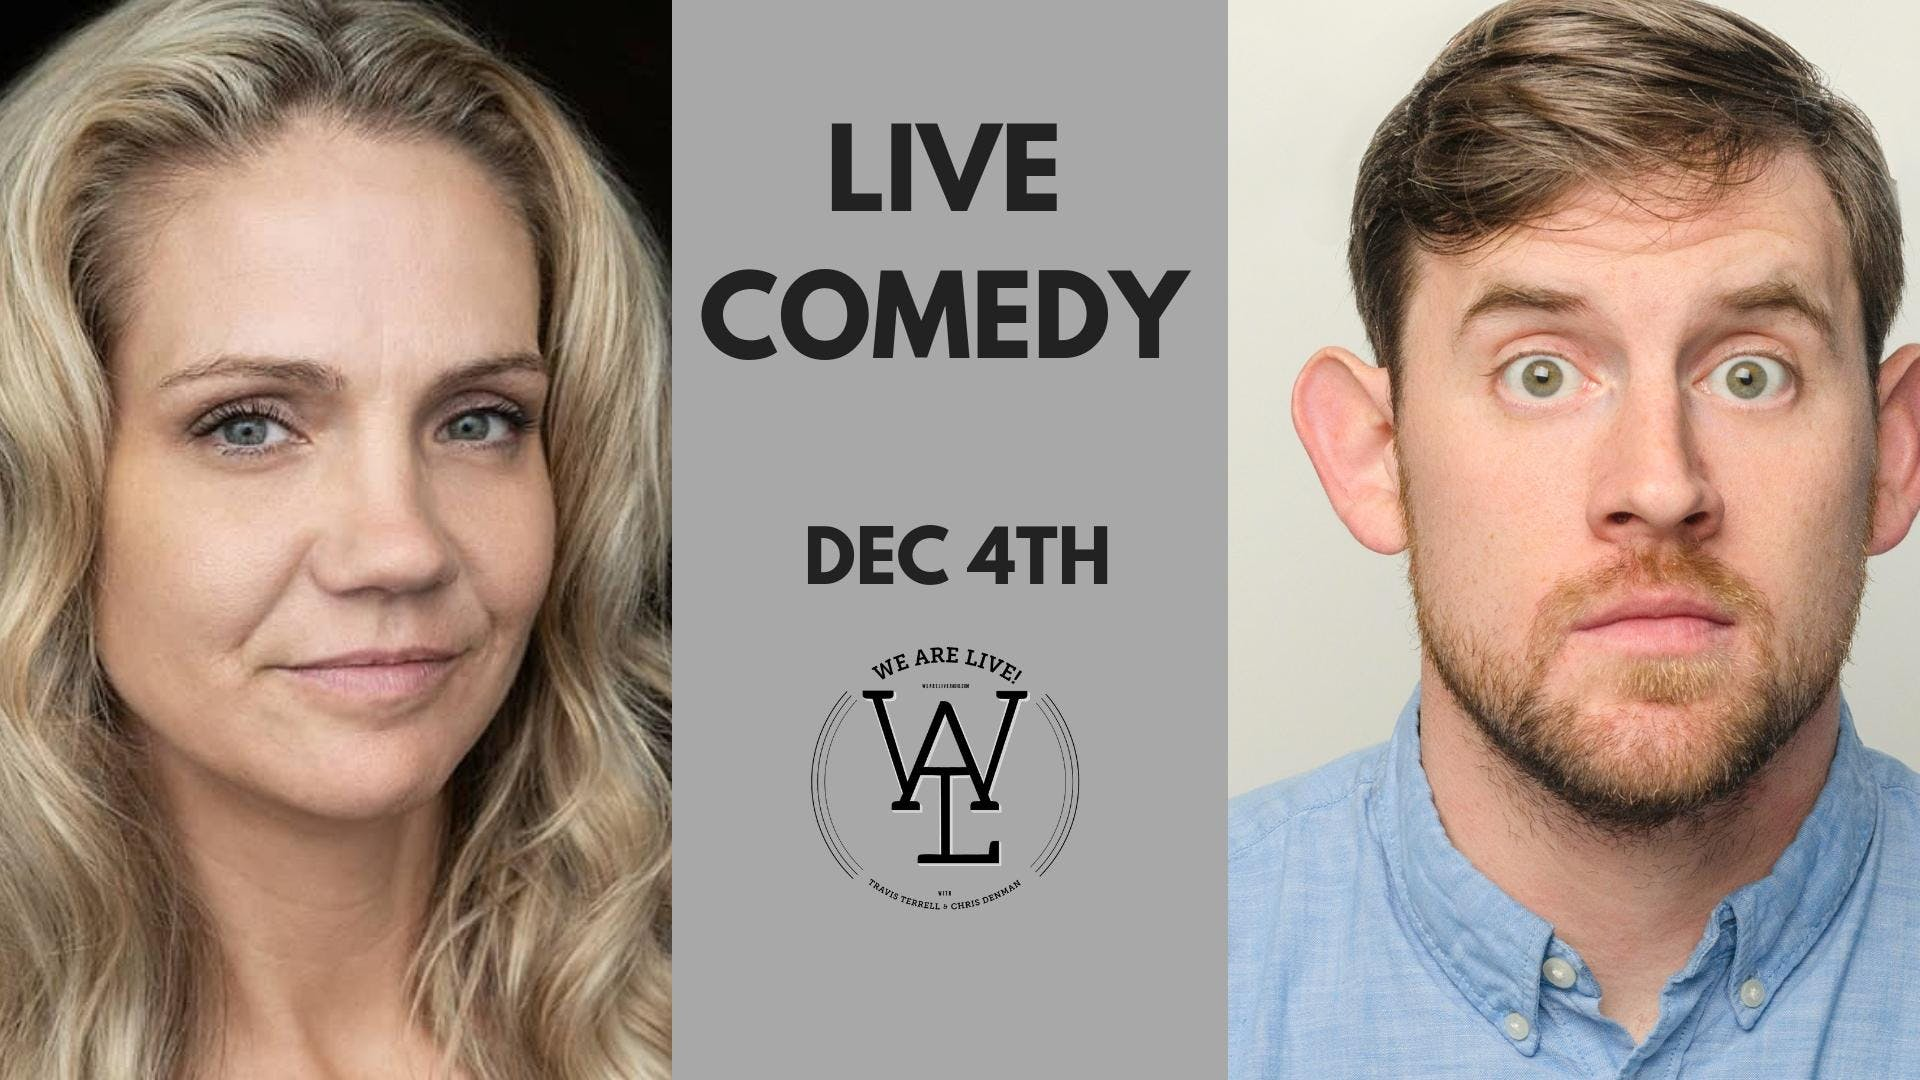 Jessa Reed Aaron Woodall Feat Nathan Orton Live Comedy At Southtown Pub 4 Dec 2018 Facebook gives people the power to share and makes the world. jessa reed aaron woodall feat nathan